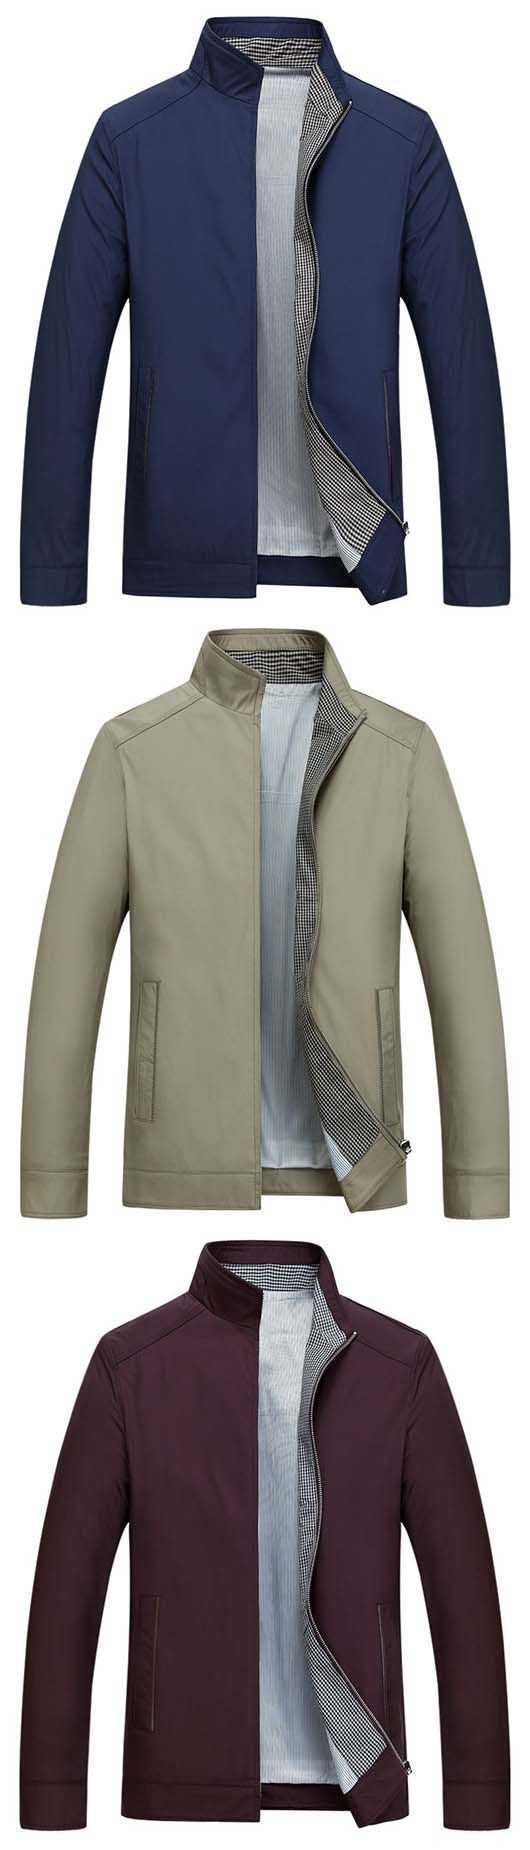 US$37.27#Business Casual Thin Stand Collar Solid Color Jackets for MenJA